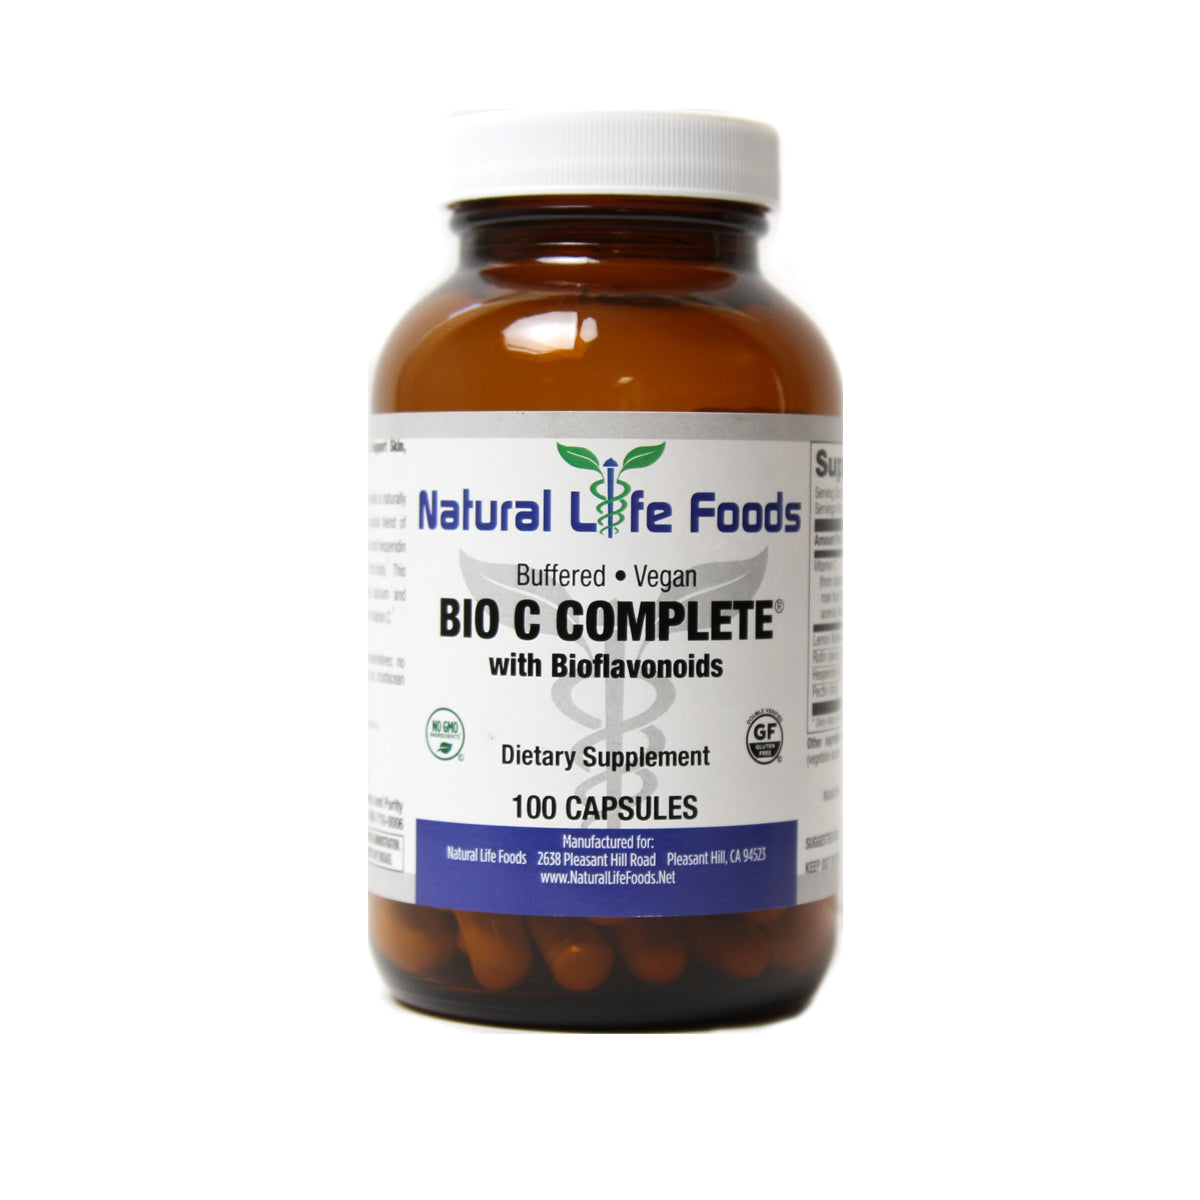 Bio C Complete with Bioflavonoids